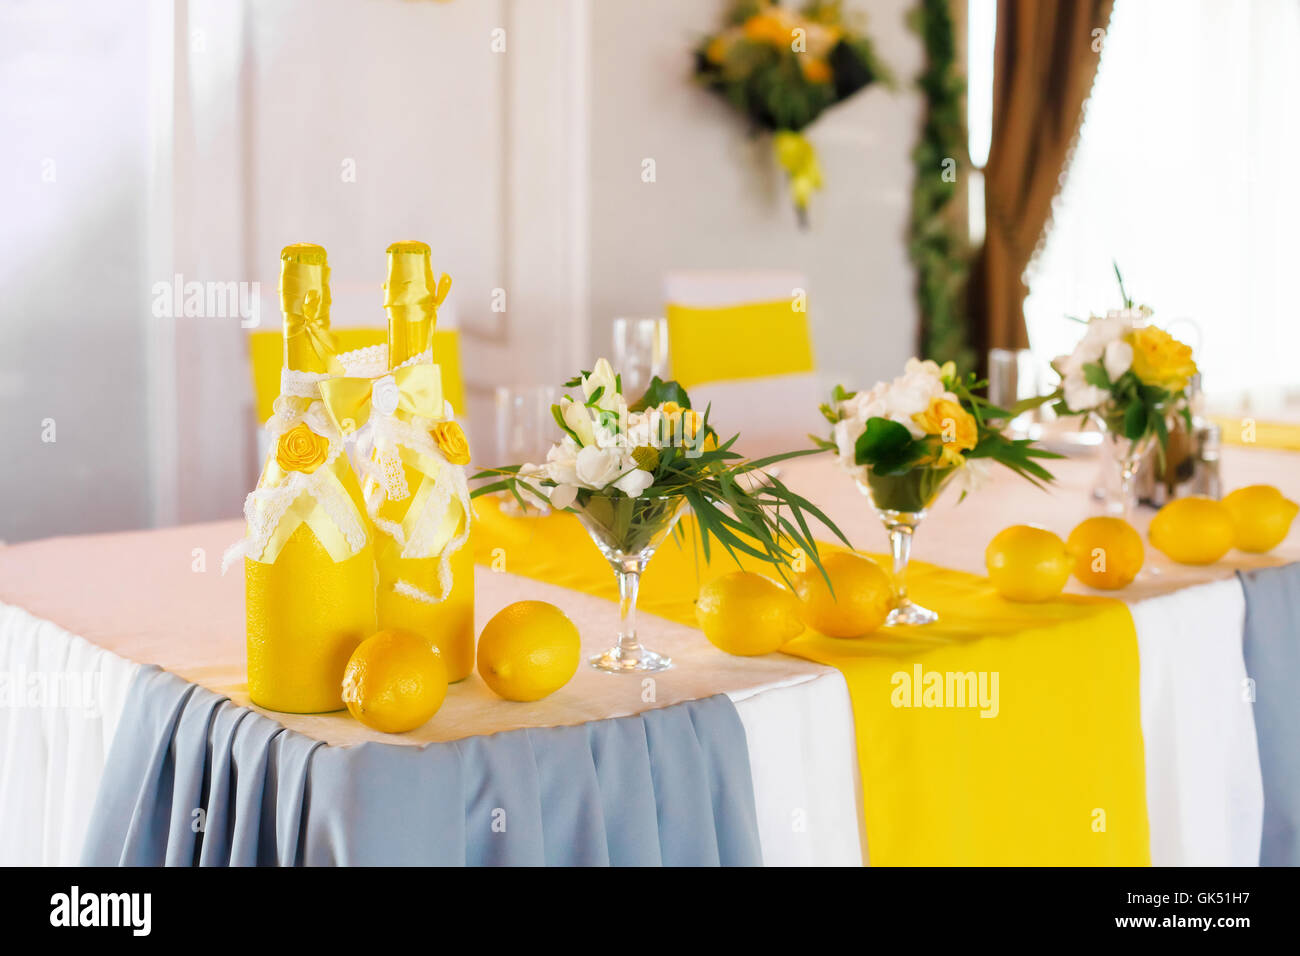 Yellow wedding table decor for bride and groom - Stock Image